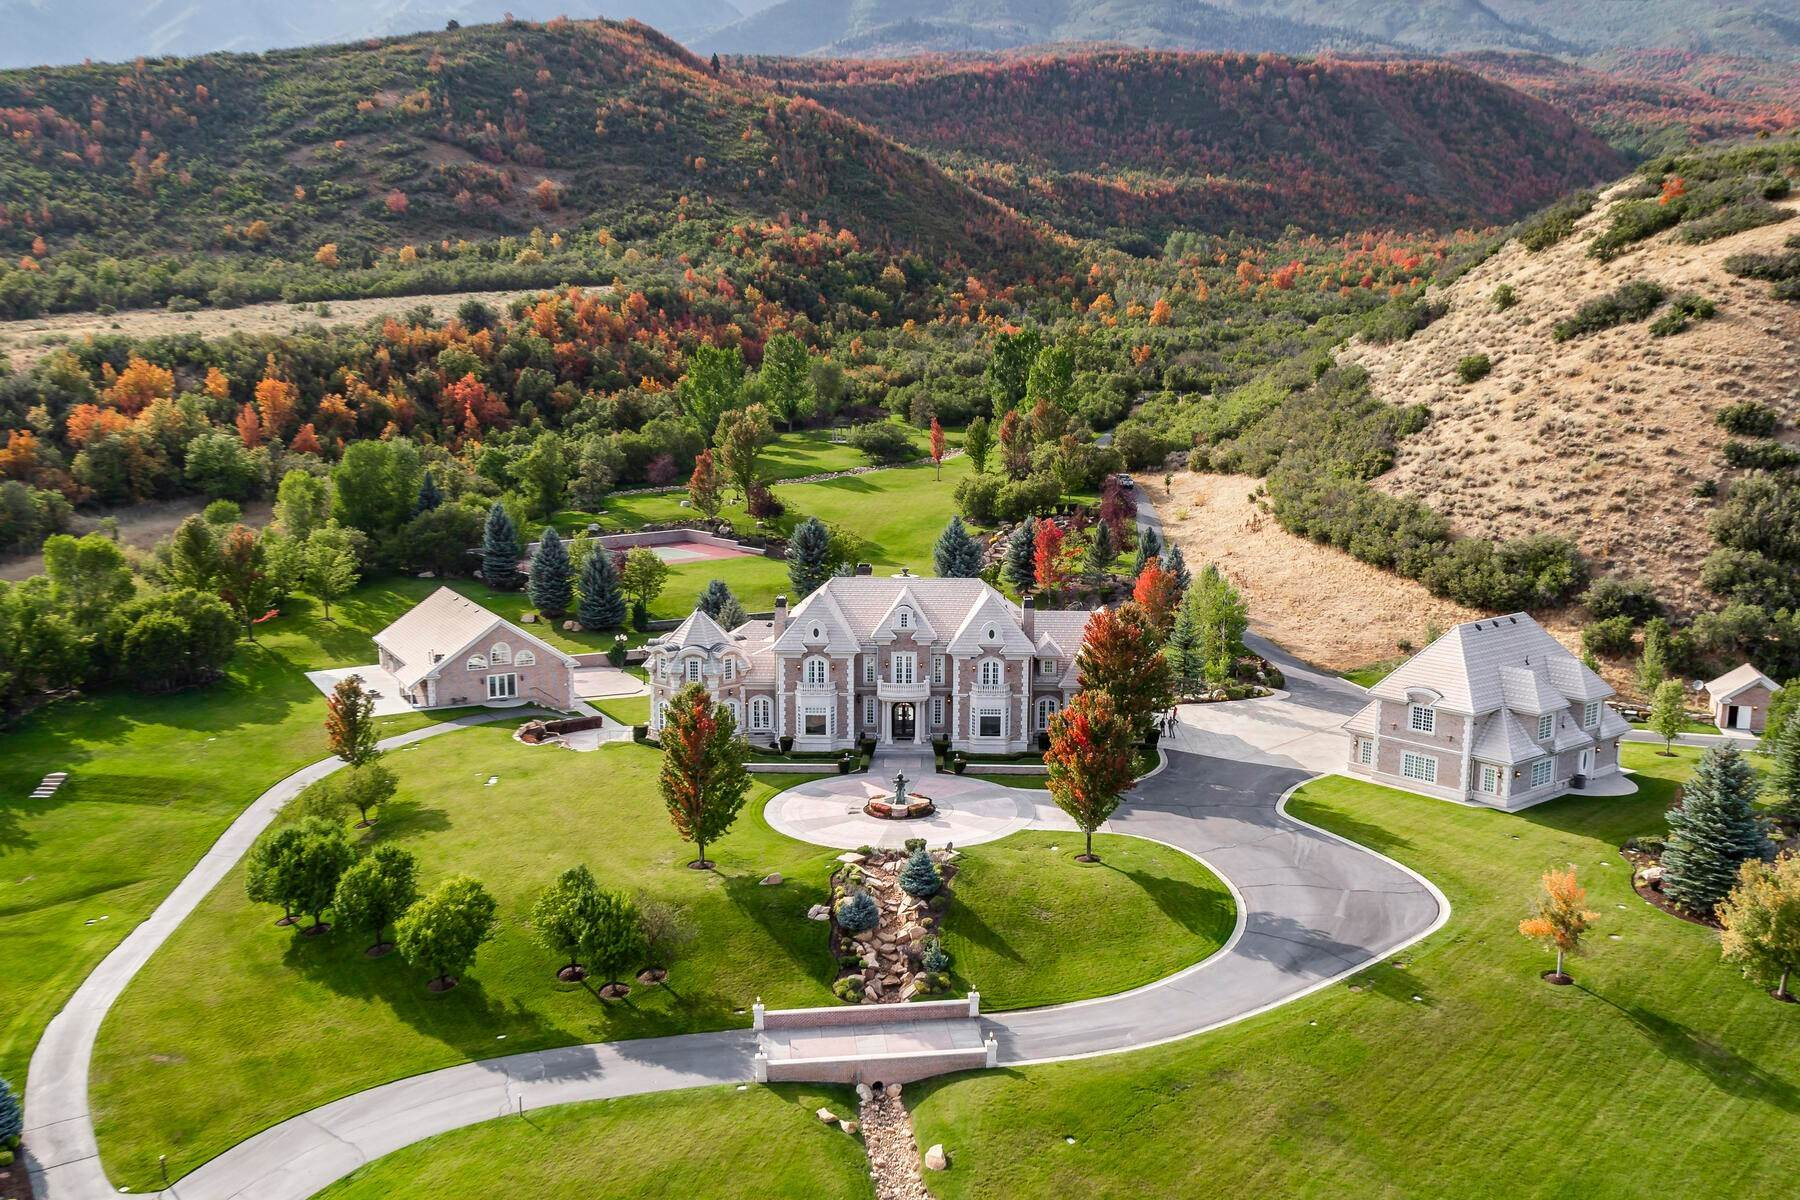 Property für Verkauf beim Hobble Creek Ranch—Luxury Estate on 3,387 Acres 533 N Left Fork Hobble Creek Cyn, Springville, Utah, 84663 Vereinigte Staaten